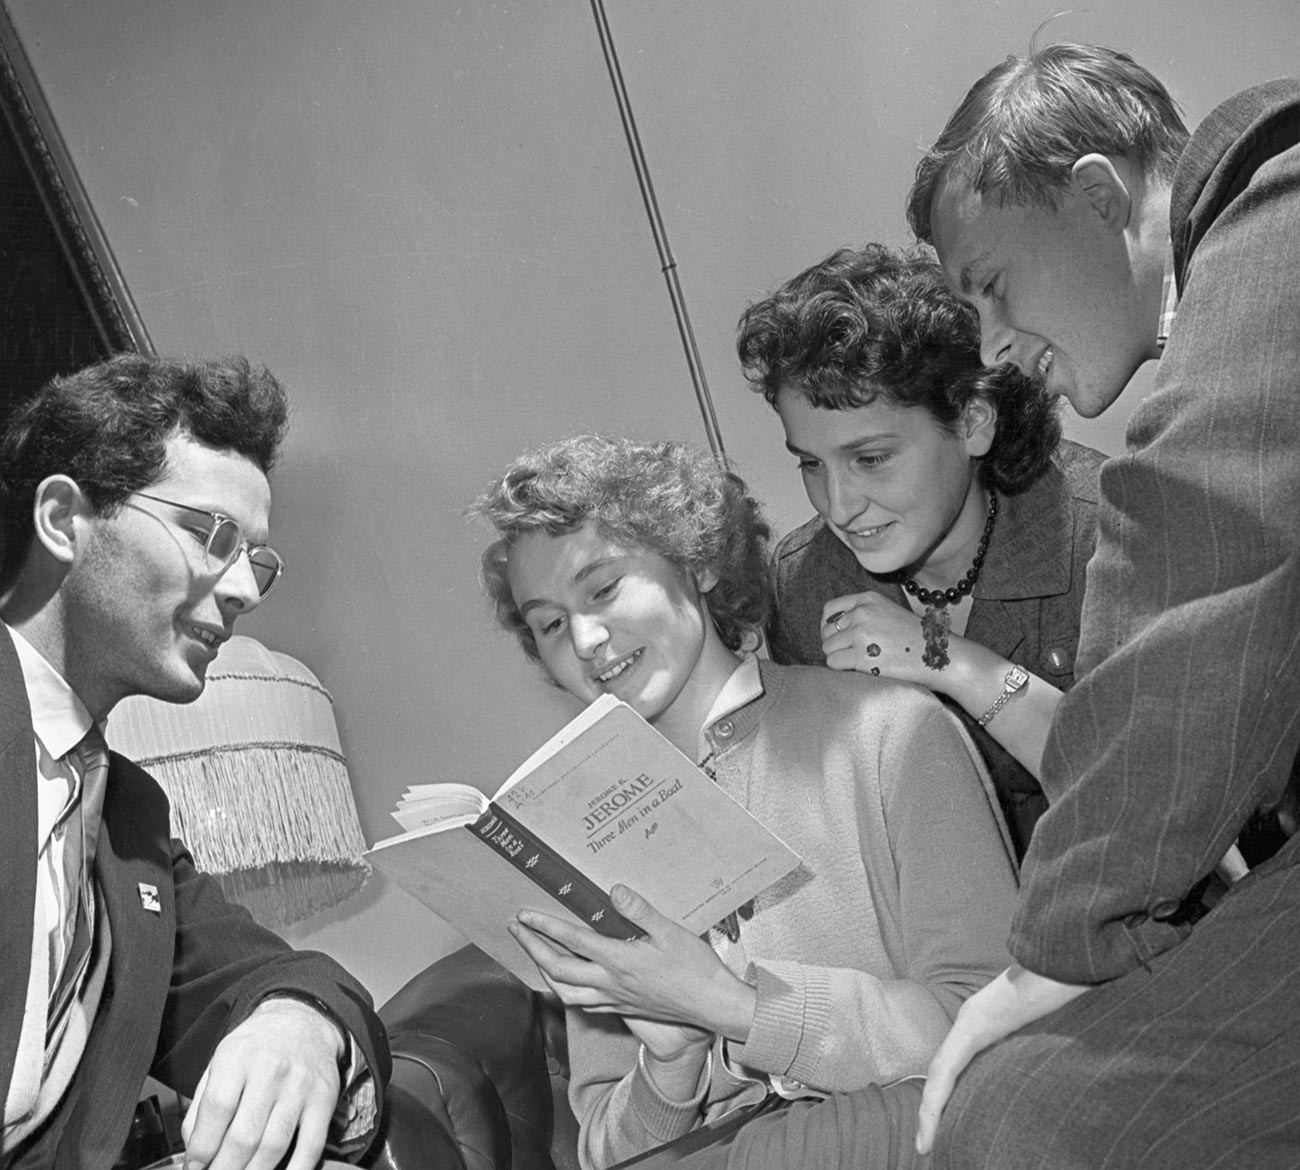 A group of Moscow students in 1958.